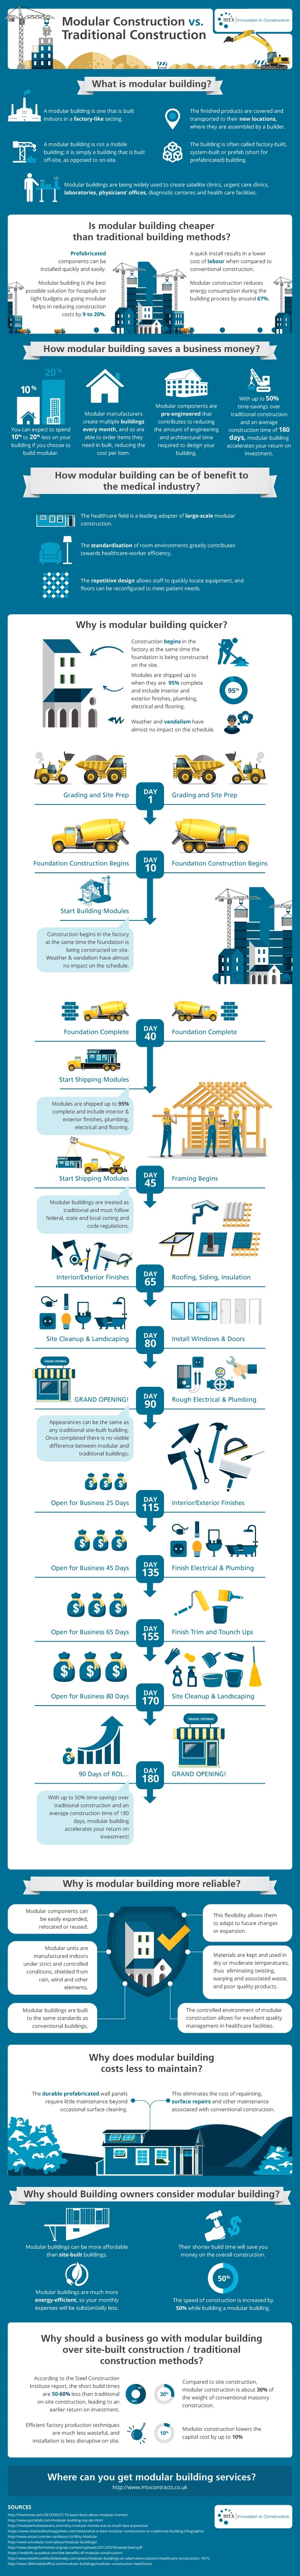 modular vs traditional construction infographic